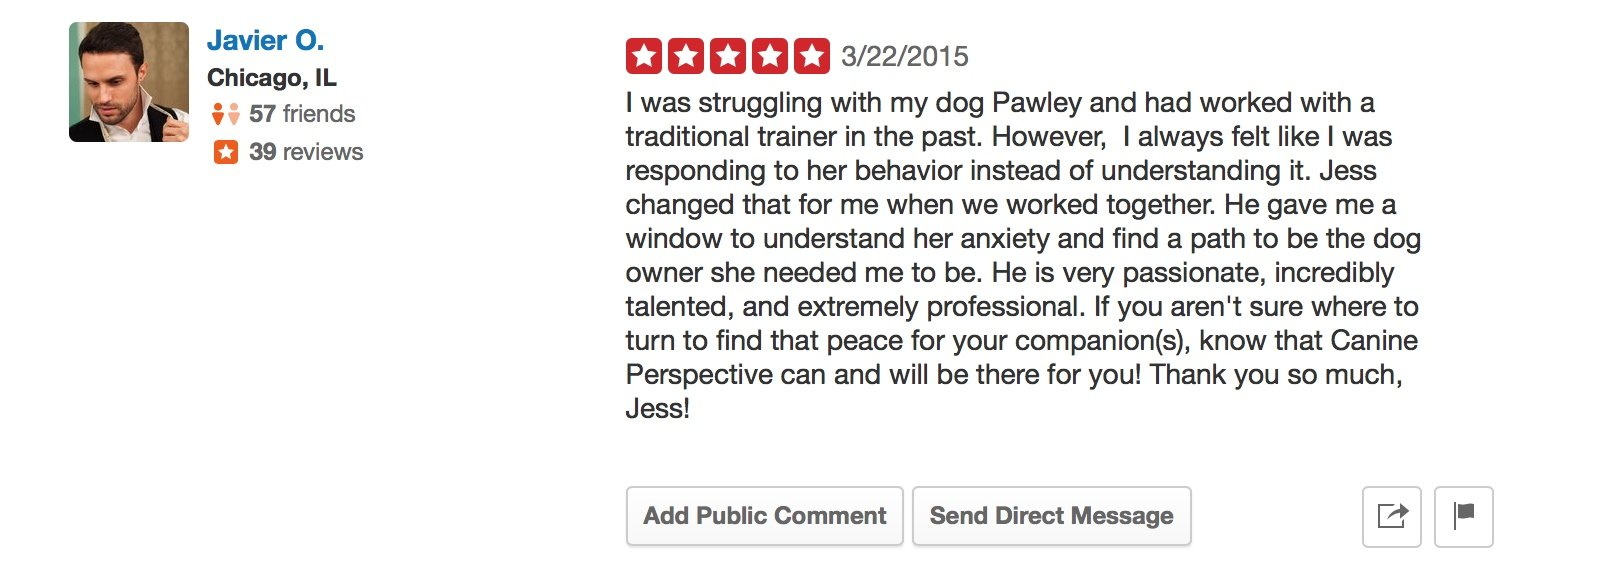 """Canine Perspective Yelp review """"I was struggling with my dog Pawley and had worked with a traditional trainer in the past. However, I always felt like I was responding to her behavior instead of understanding it. Jess changed that for me when we worked together. He gave me a window to understand her anxiety and find a path to be the dog owner she needed me to be. He is very passionate, incredibly talented, and extremely professional. If you aren't sure where to turn to find that peace for your companion(s), know that Canine Perspective can and will be there for you! Thank you so much, Jess!"""""""